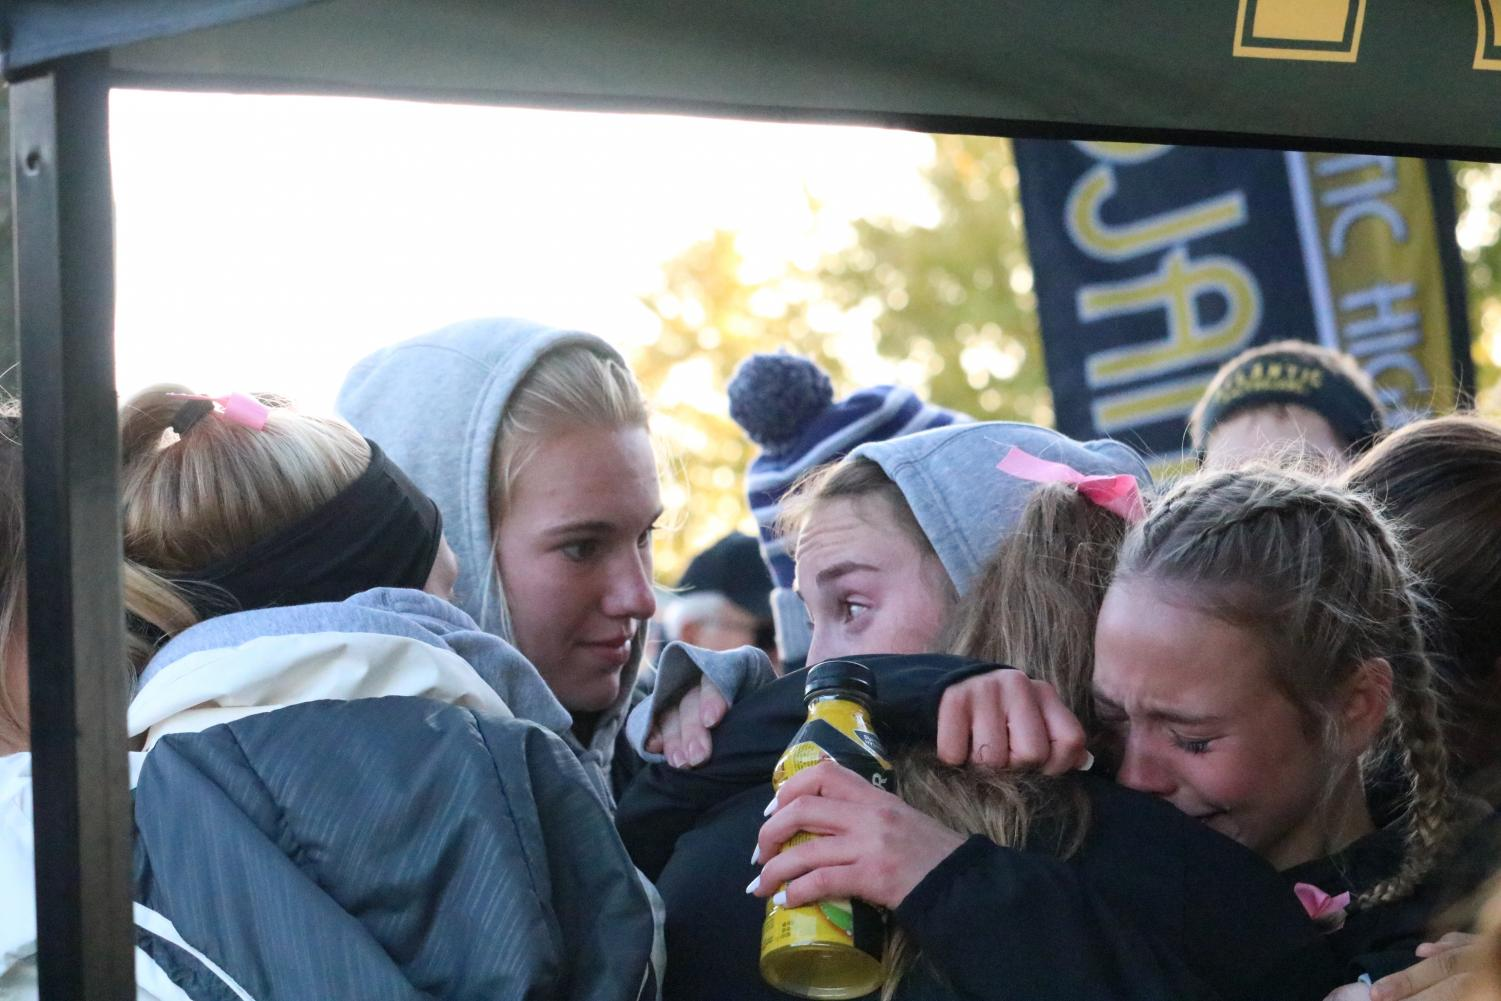 The girls cross country team comforts one another after earning fourth place at districts. Atlantic was 17 points behind the third place team, ADM.